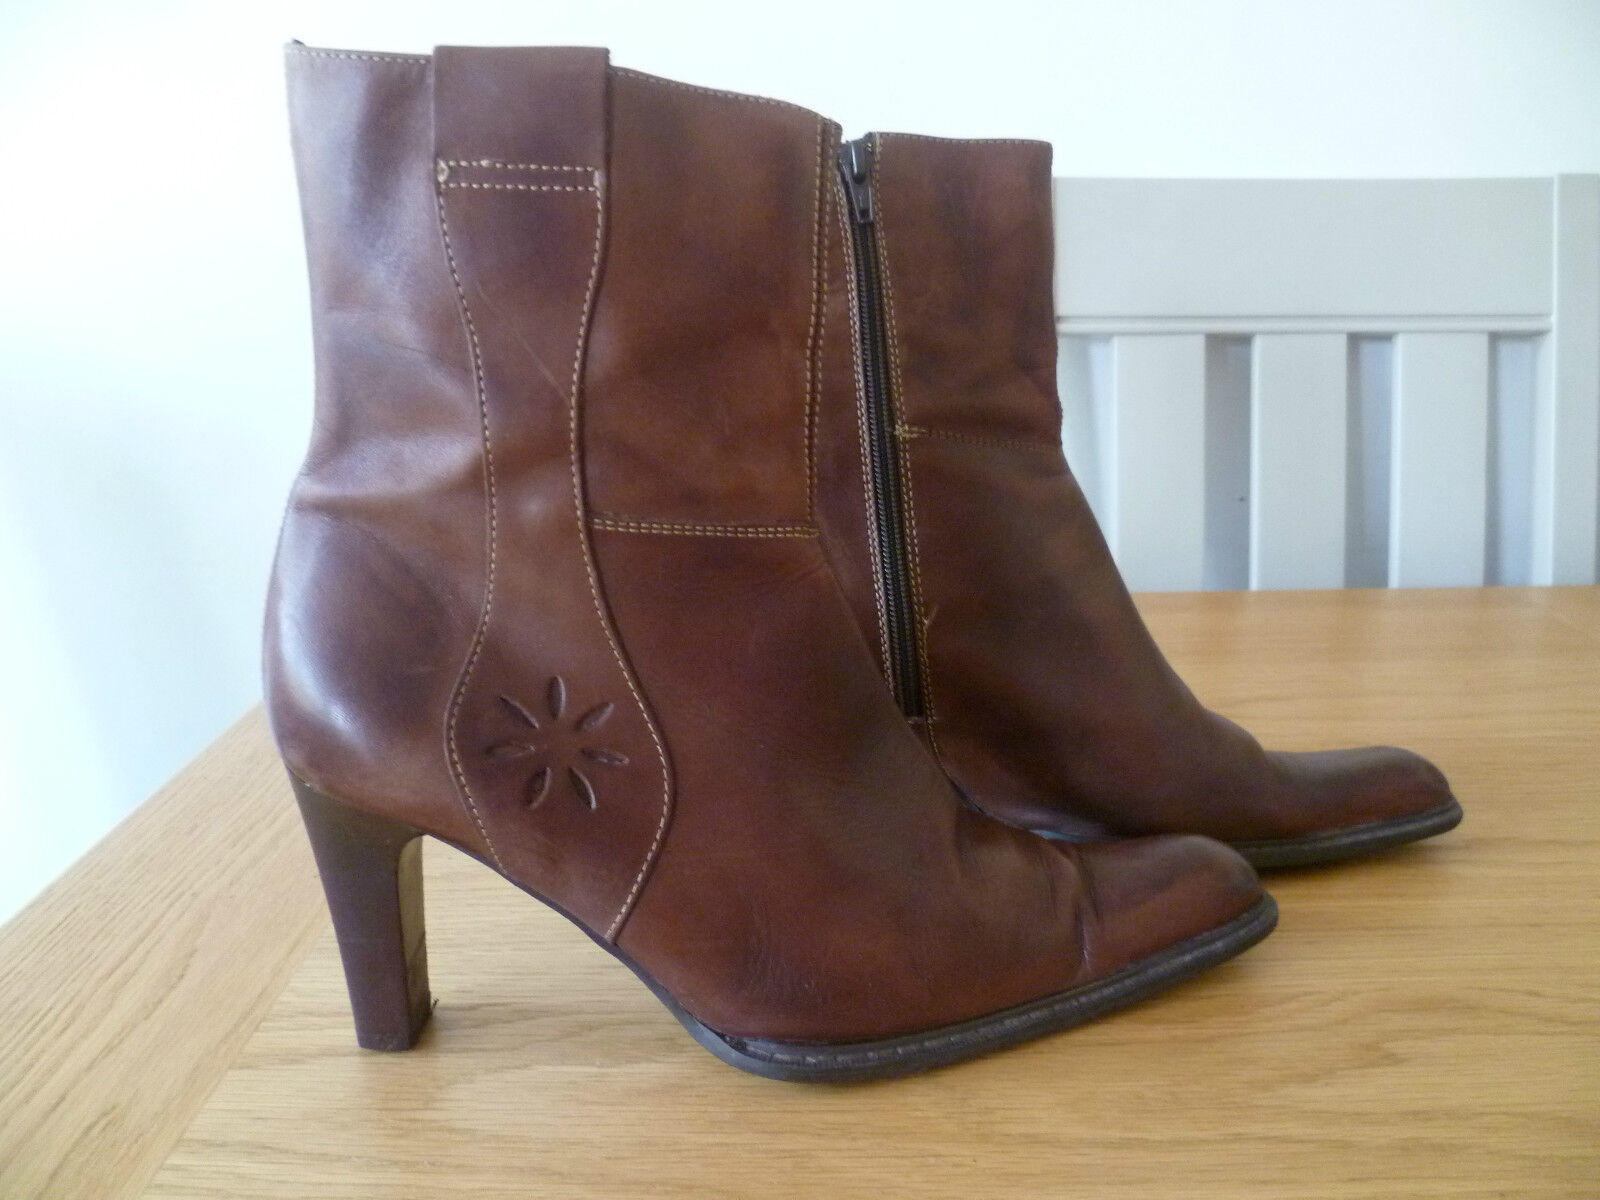 ZARA SIZE 41 UK7 LADIES BROWN ALL LEATHER ANKLE BOOTS 3.5  HEEL LEATHER LINED